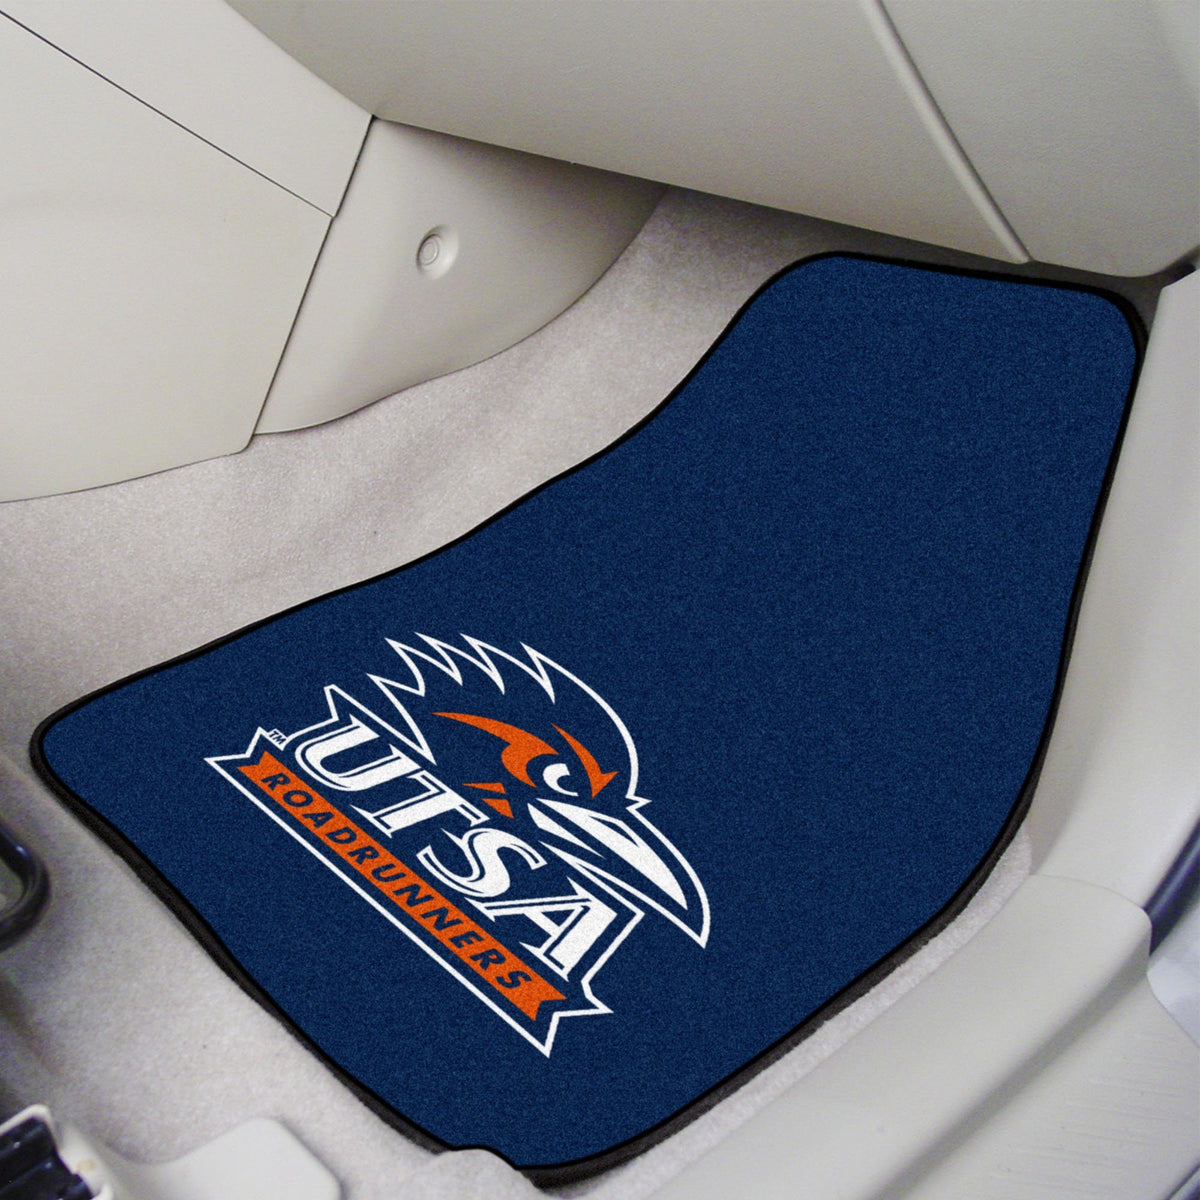 Collegiate - Carpet Car Mat, 2-Piece Set: T - Z Collegiate Car Mat, Front Car Mats, 2-pc Carpet Car Mat Set, Collegiate, Auto Fan Mats UTSA